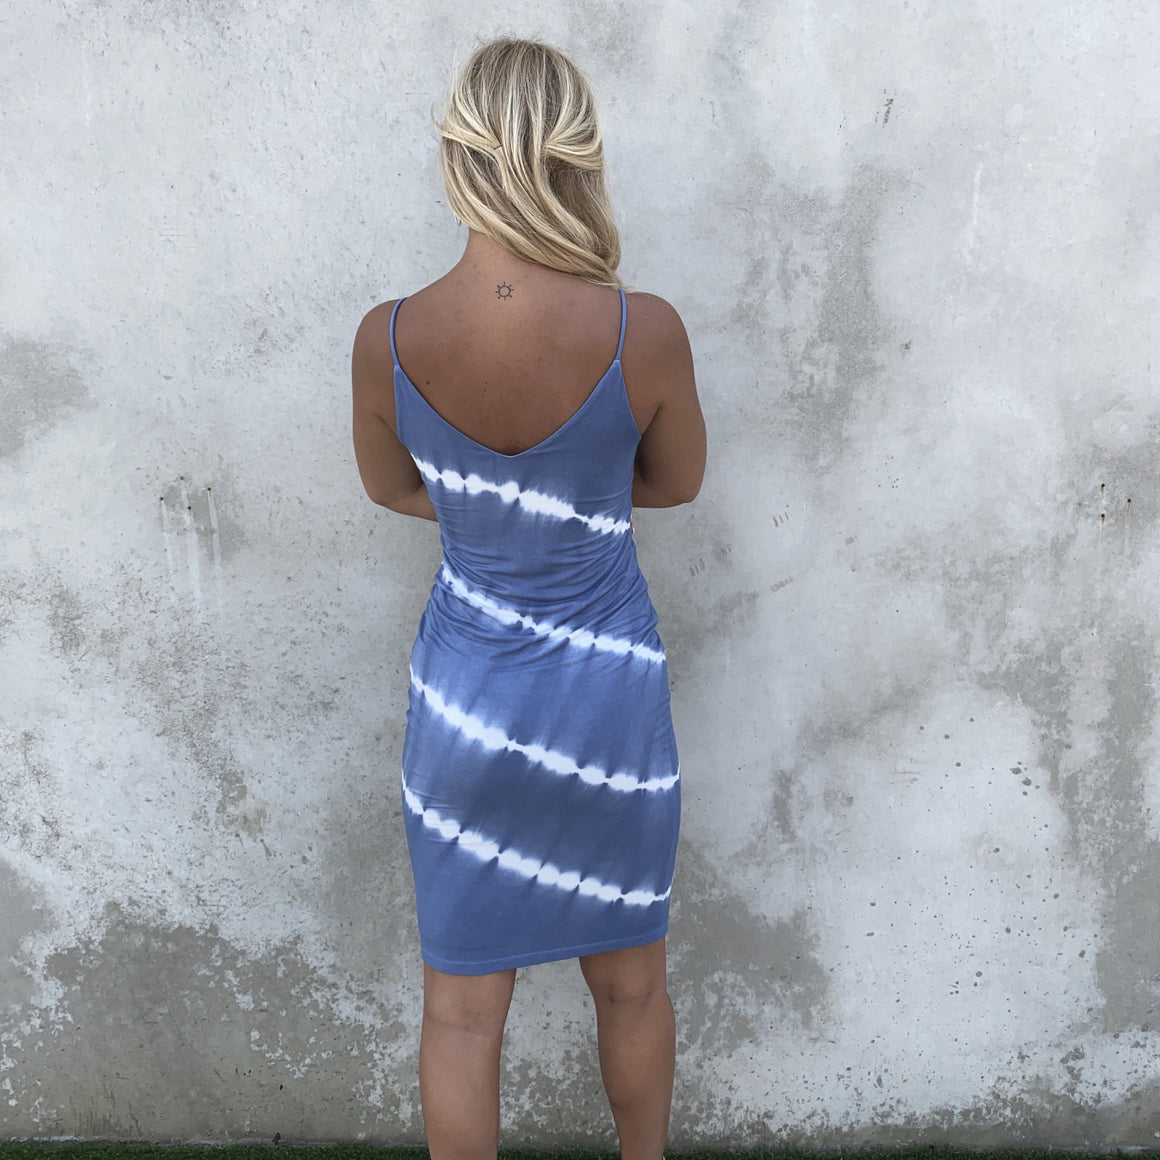 On The Horizon Blue Tie Dye Midi Dress - Dainty Hooligan